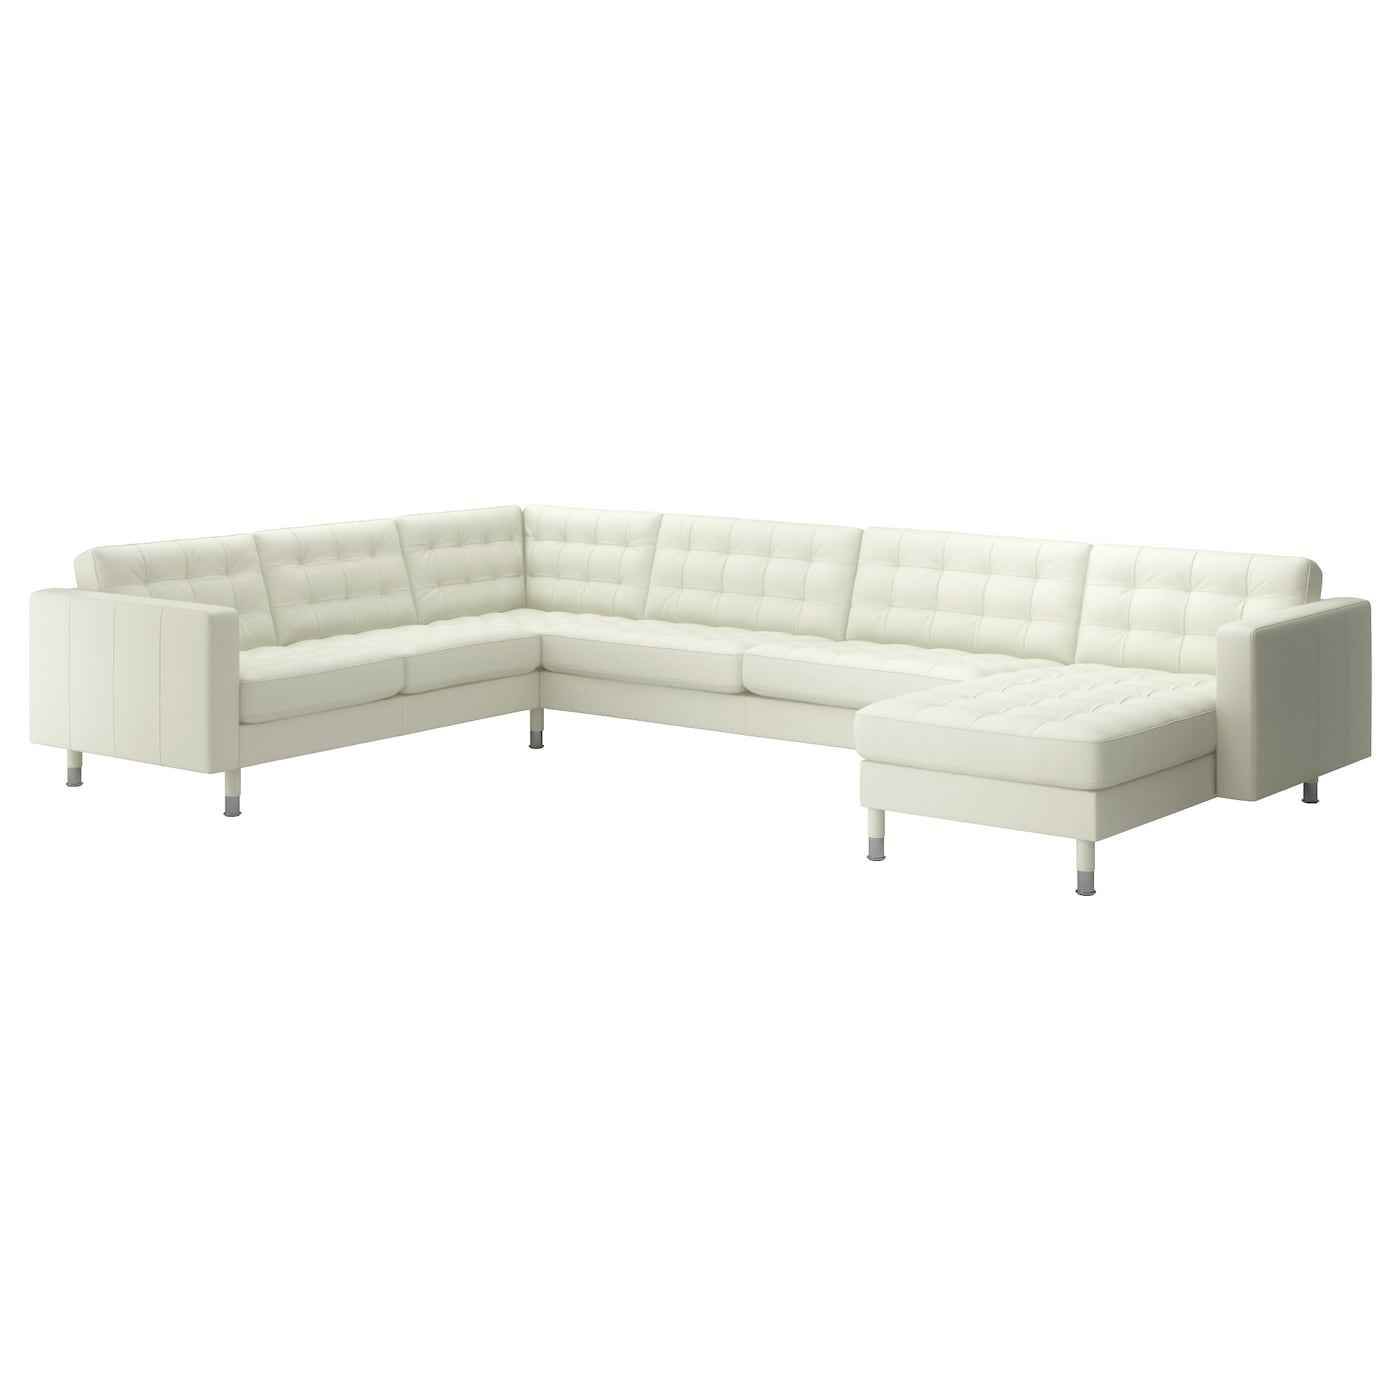 Landskrona corner sofa 23 32 and chaise longue grann for Chaise longue aluminium pliante